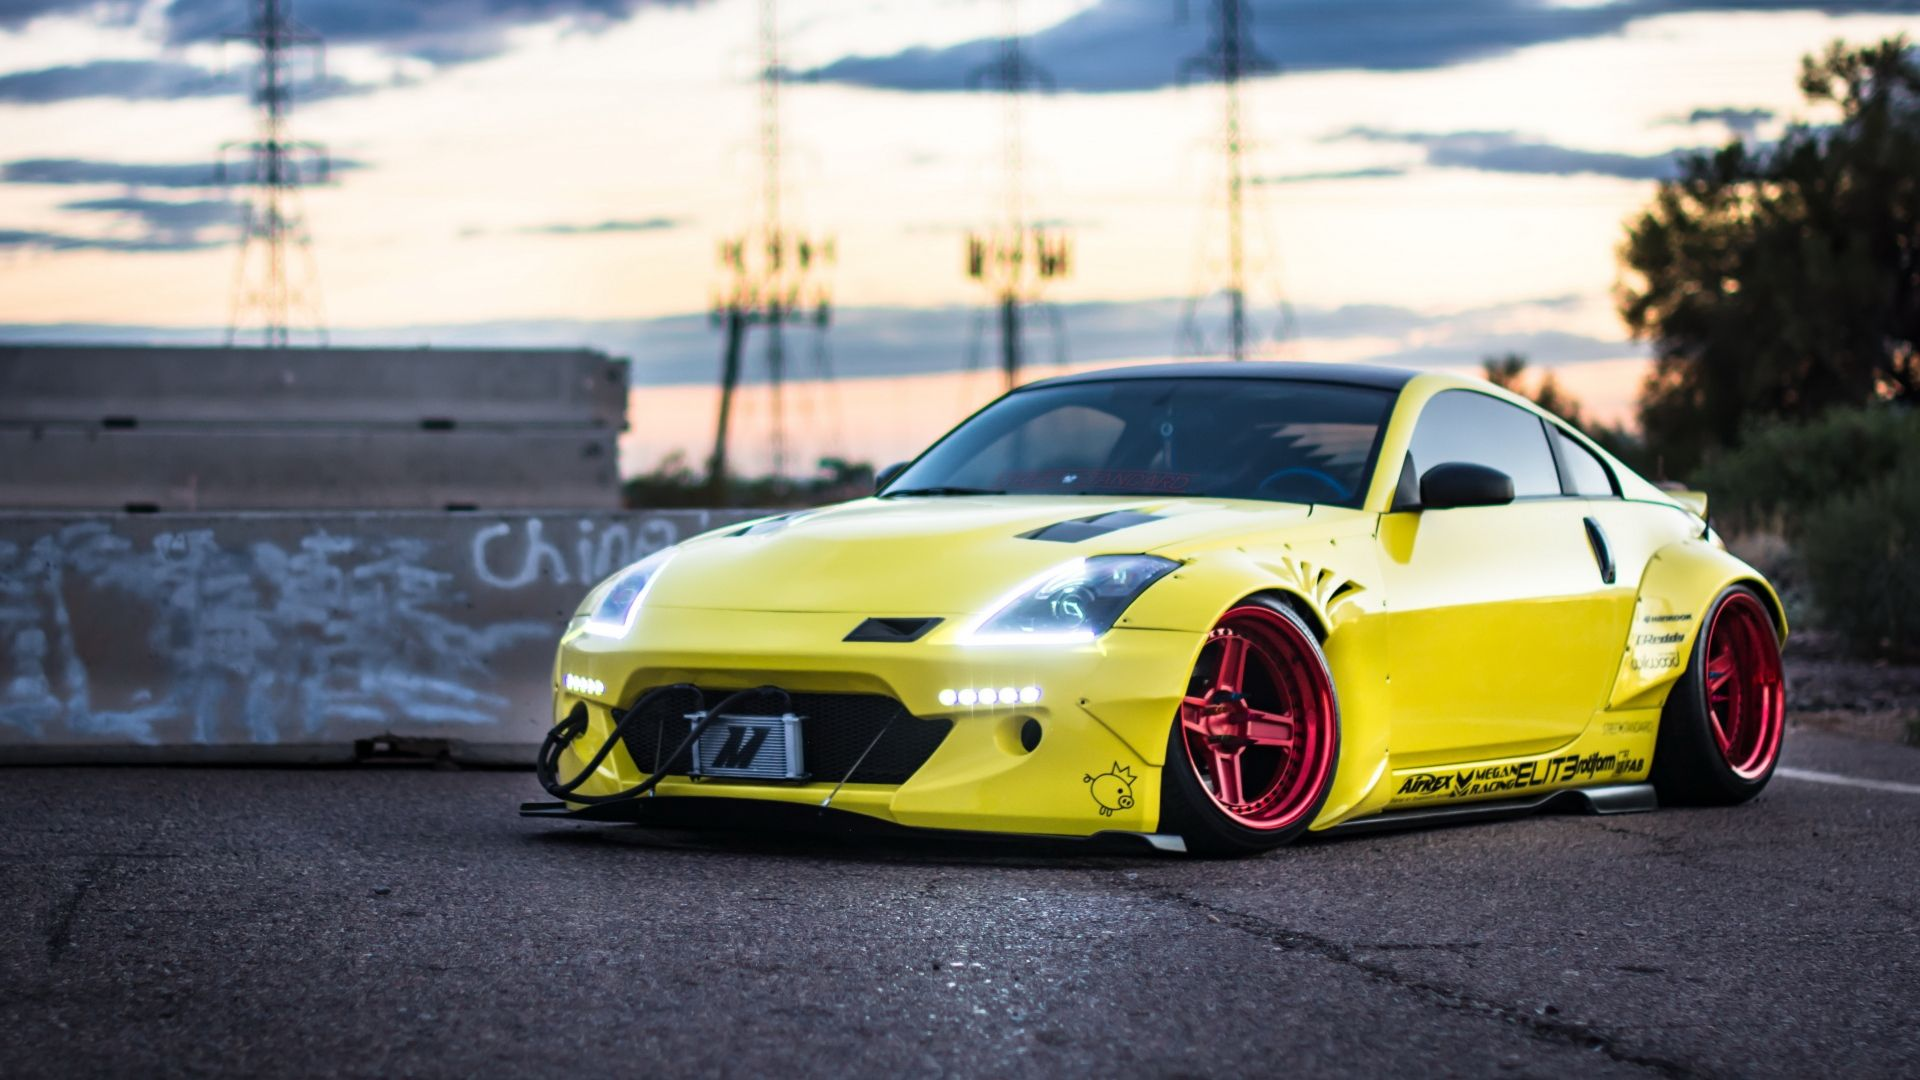 Nissan 350z Wallpapers Hd Car Wallpapers And Backgrounds Nissan 350z Nissan Sports Car Wallpaper